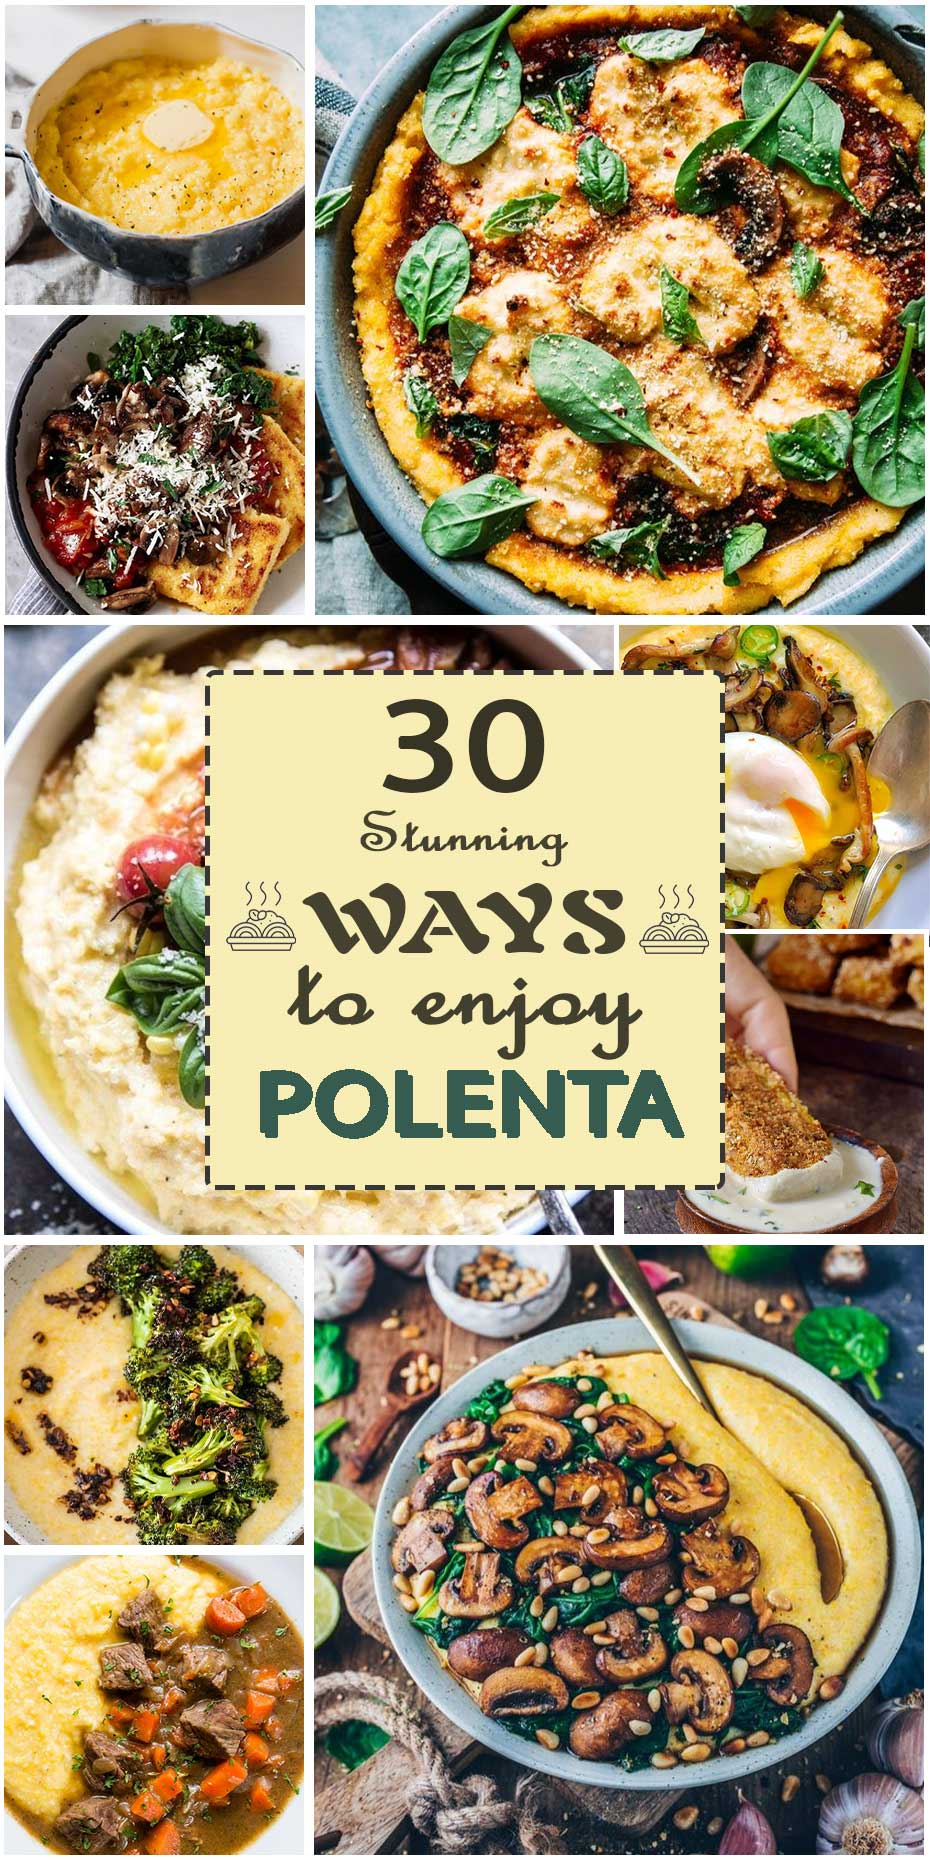 30 Stunning Ways To Enjoy Polenta